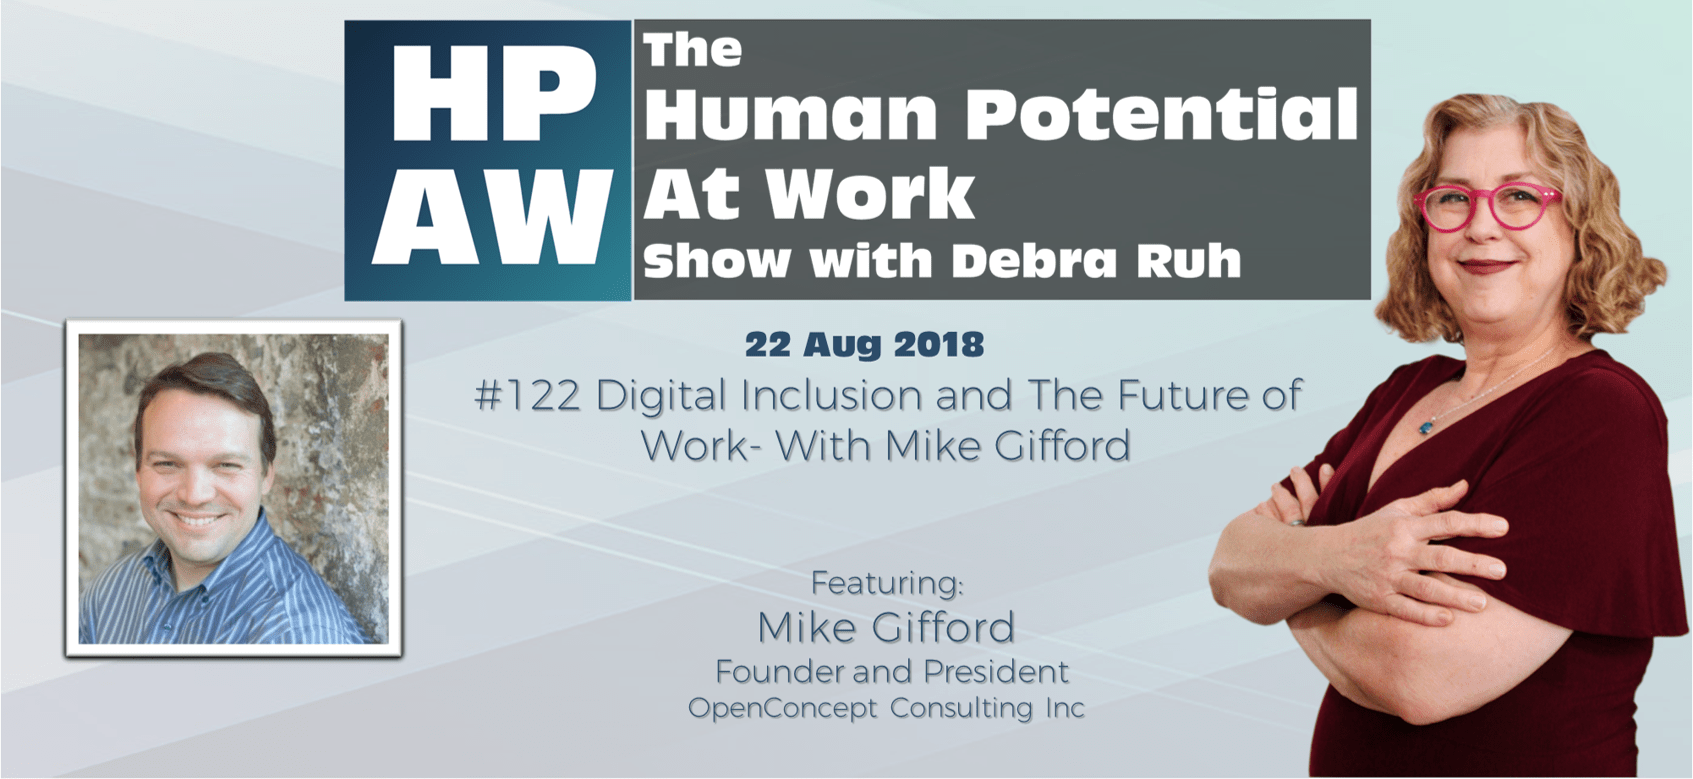 Episode Flyer for #122 Digital Inclusion and The Future of Work- With Mike Gifford